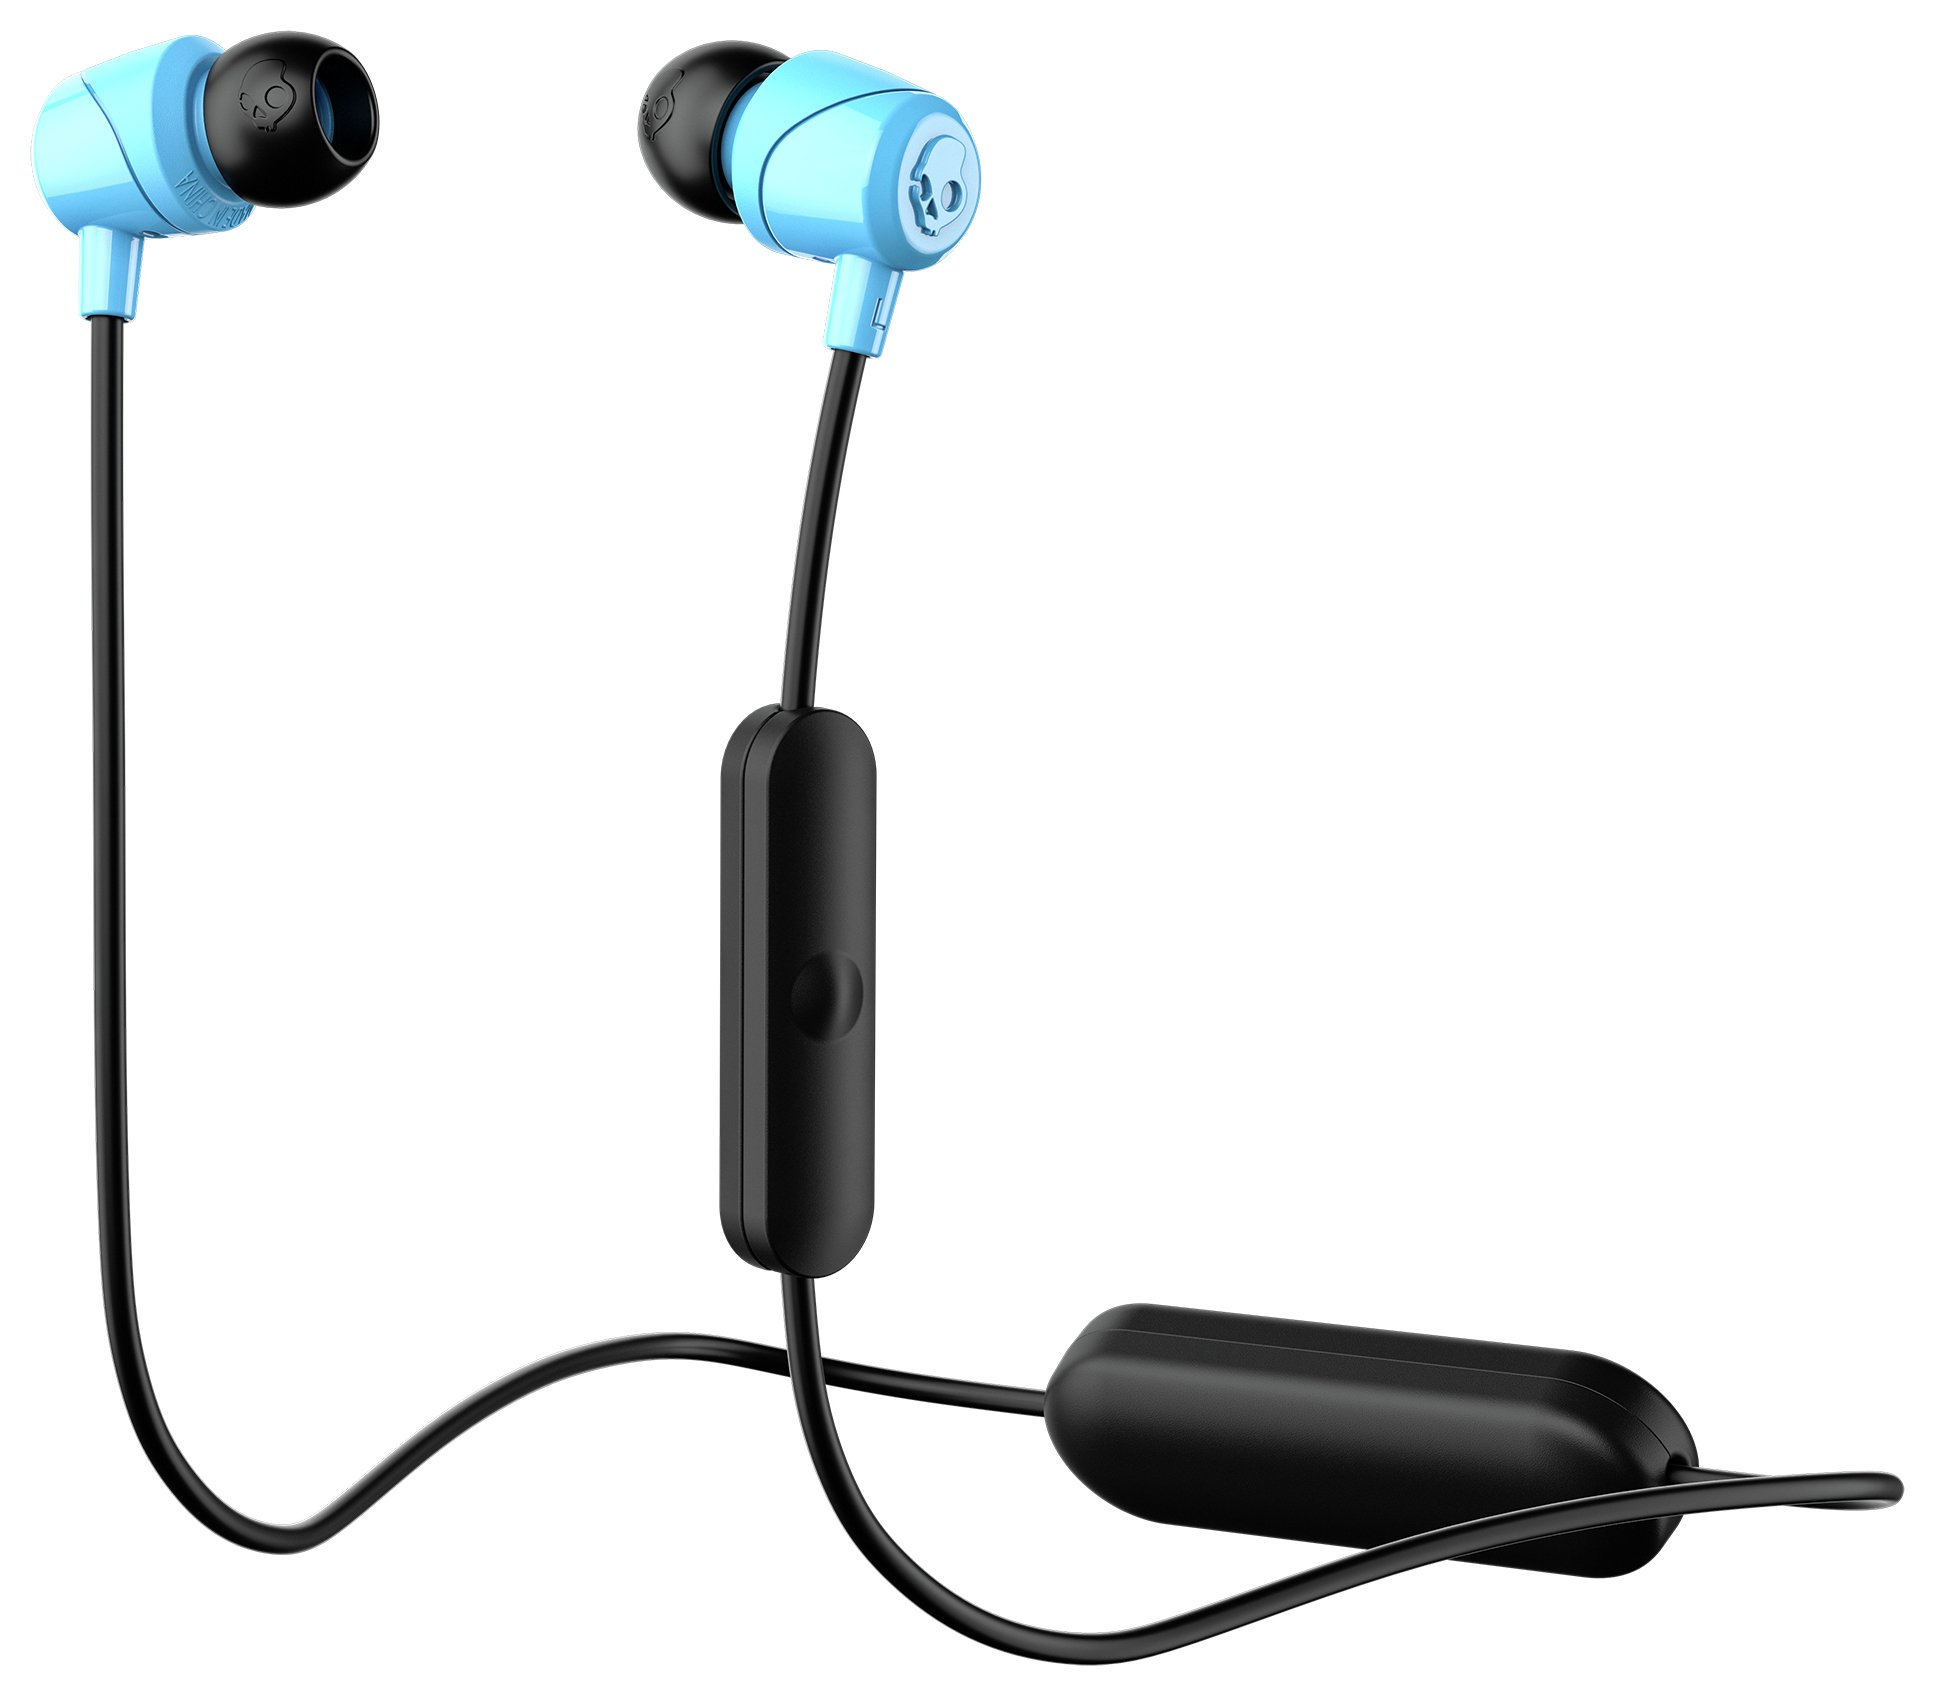 Skullcandy Jib Wireless In-Ear Headphones - Blue